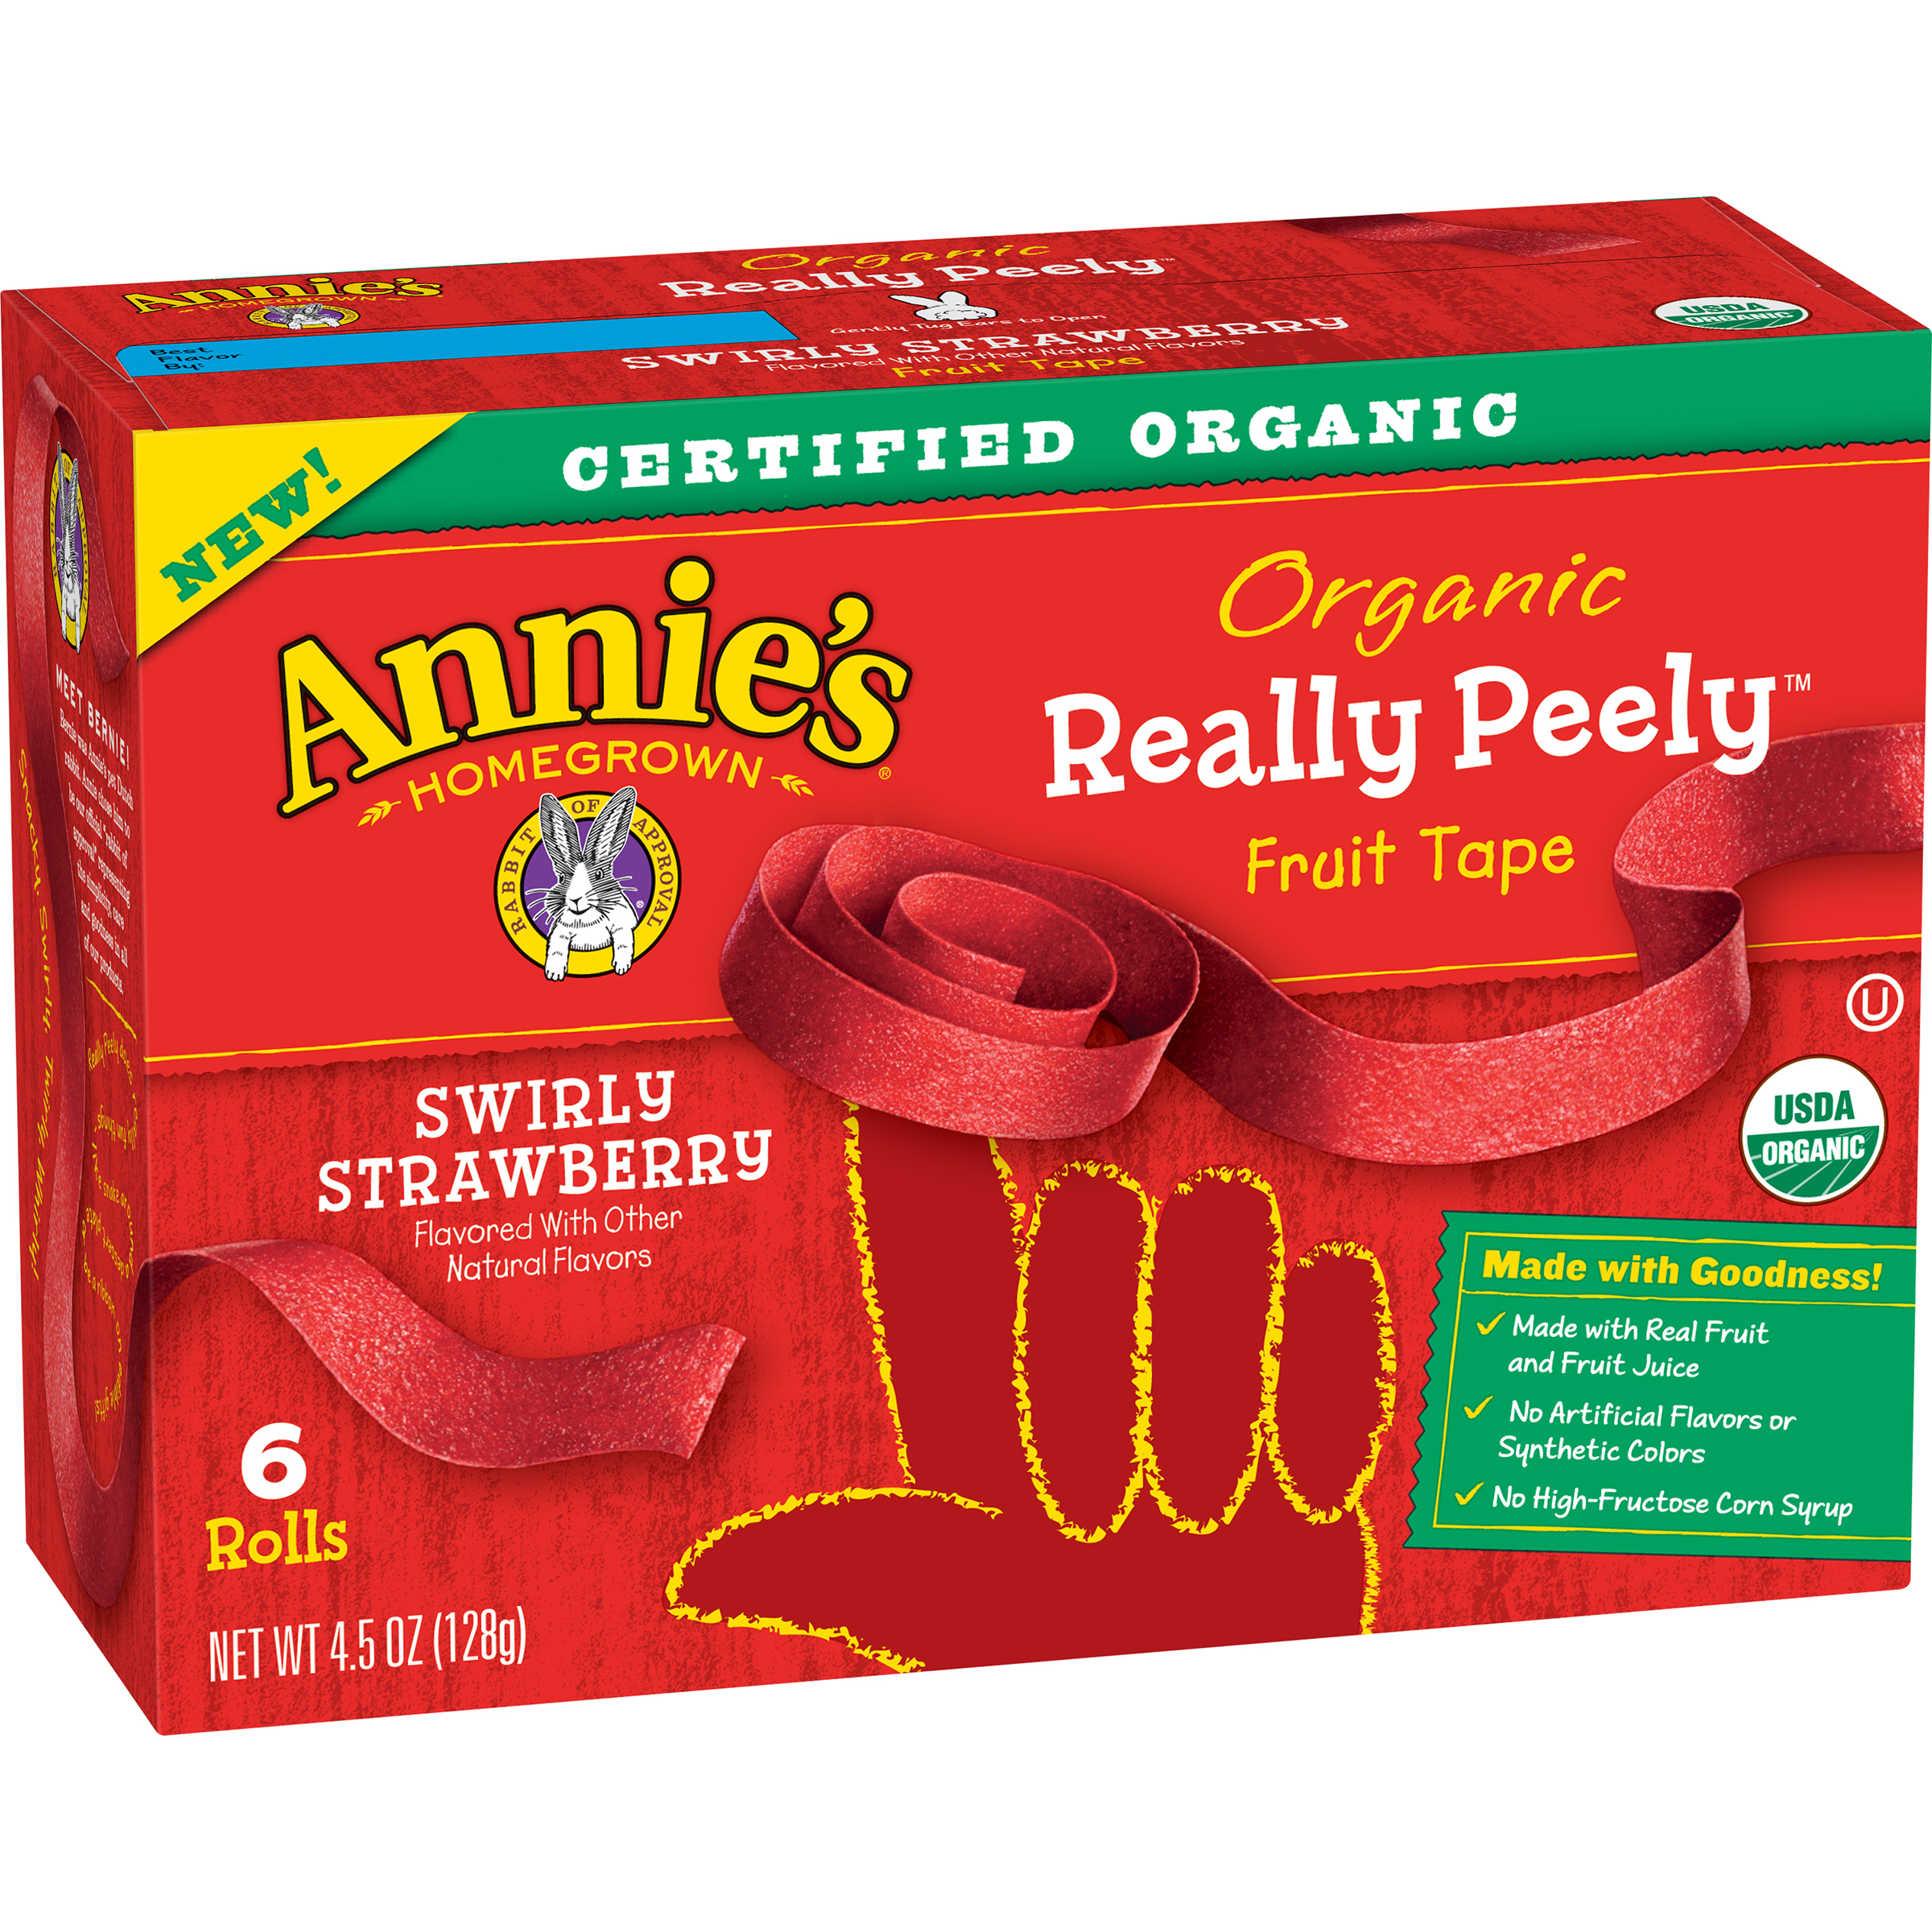 Annie's® Swirly Strawberry Organic Really Peely™ Fruit Tape 6 ct Box